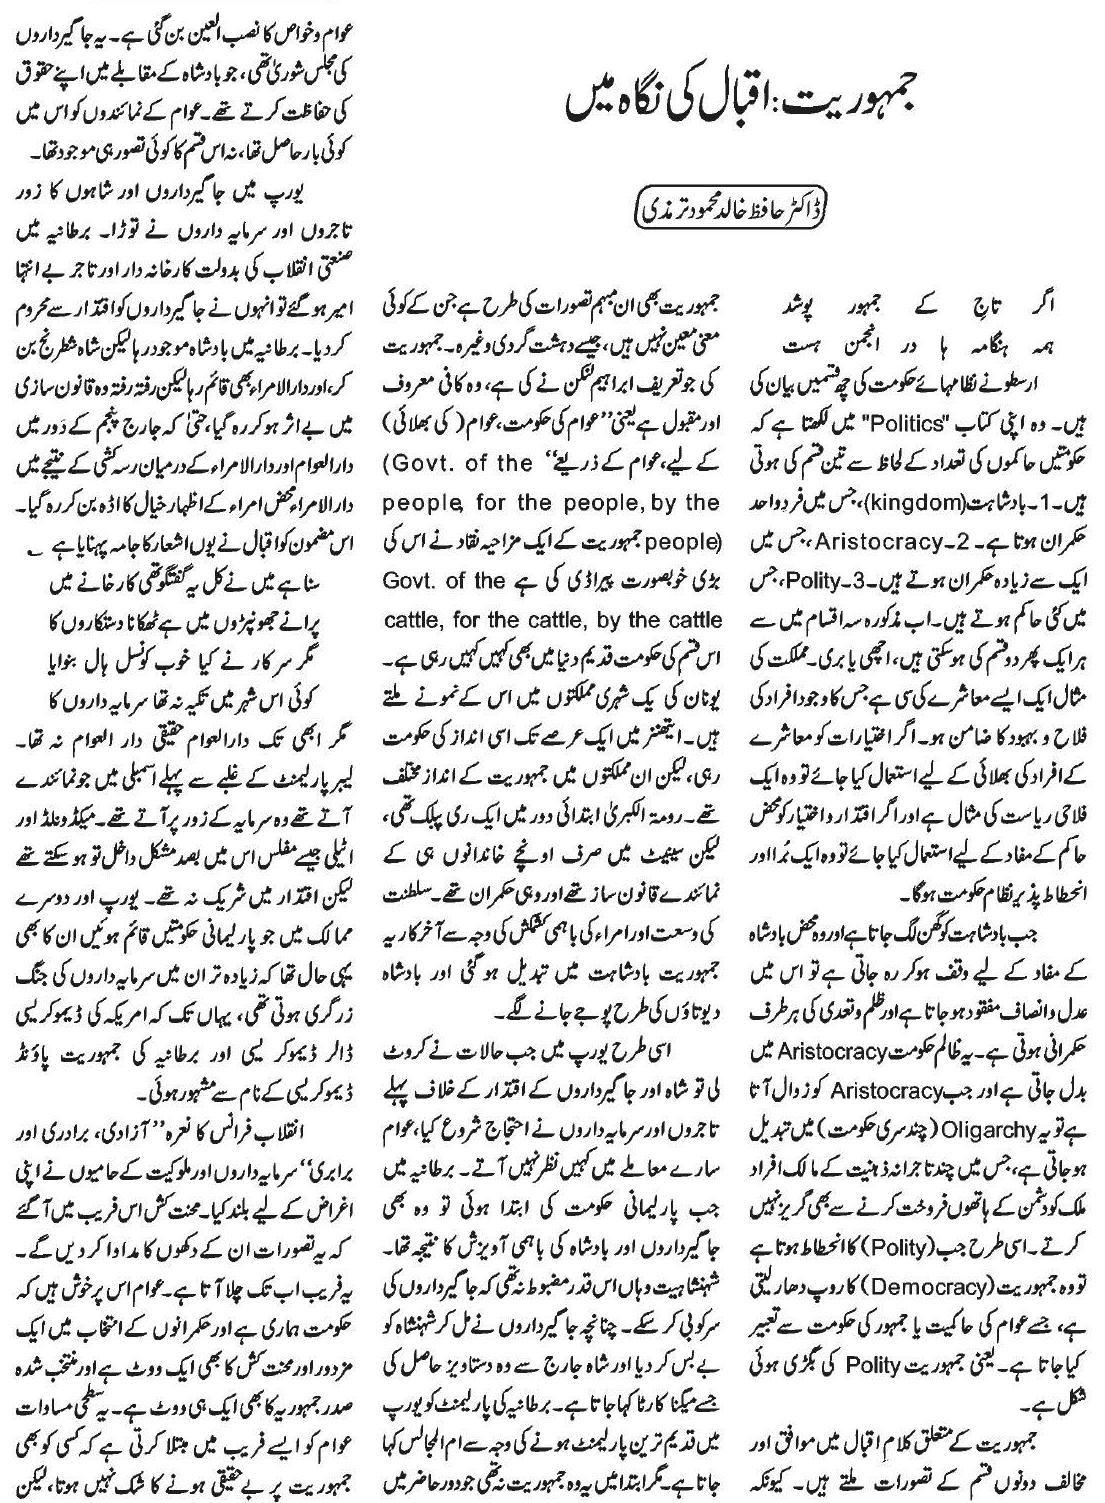 electricity essay in urdu Papers jewishcouncil info - free dissertation writing samples for asl class 10 topics for essay writing in urdu, problem solving tasks for students buy journalism.